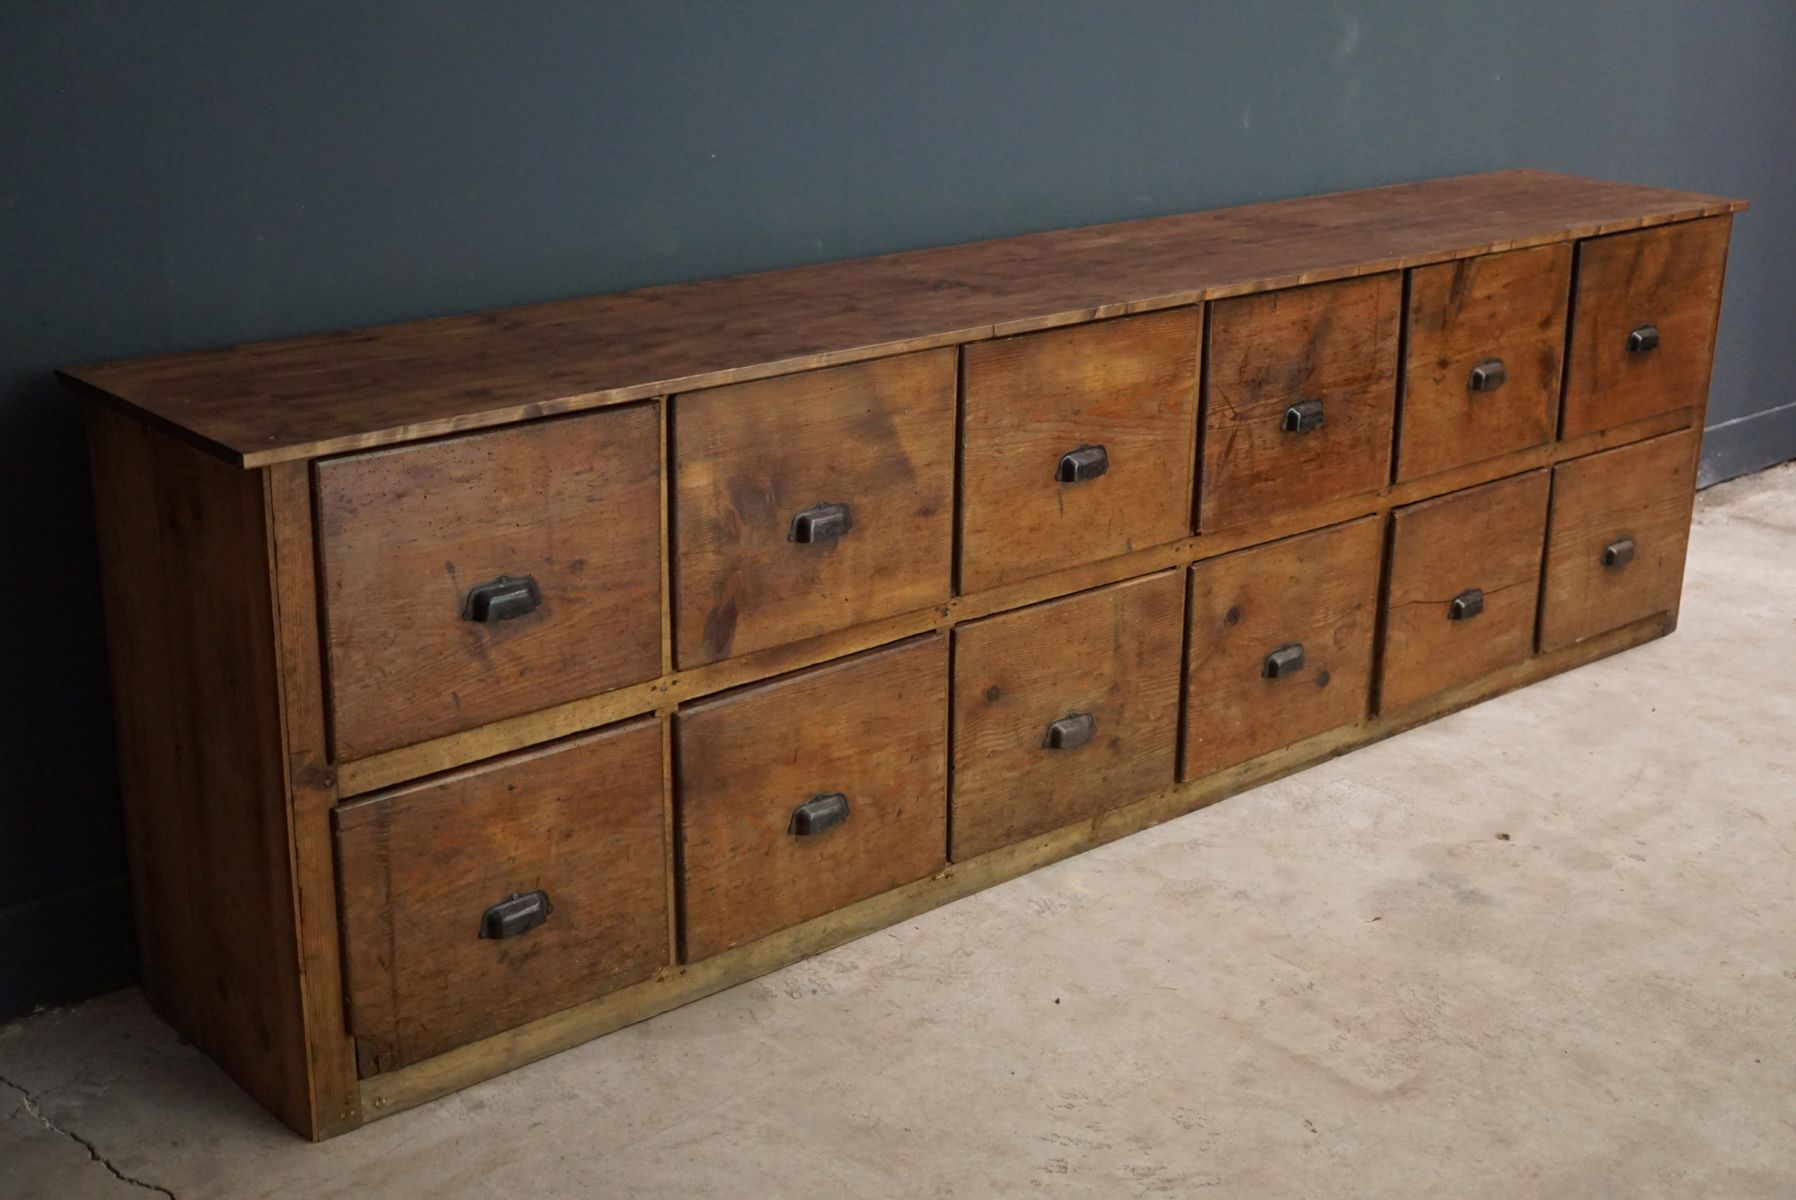 Large French Pine Apothecary Cabinet, 1950s 9. Price: $4,860.00 Regular  Price: $5,830.00